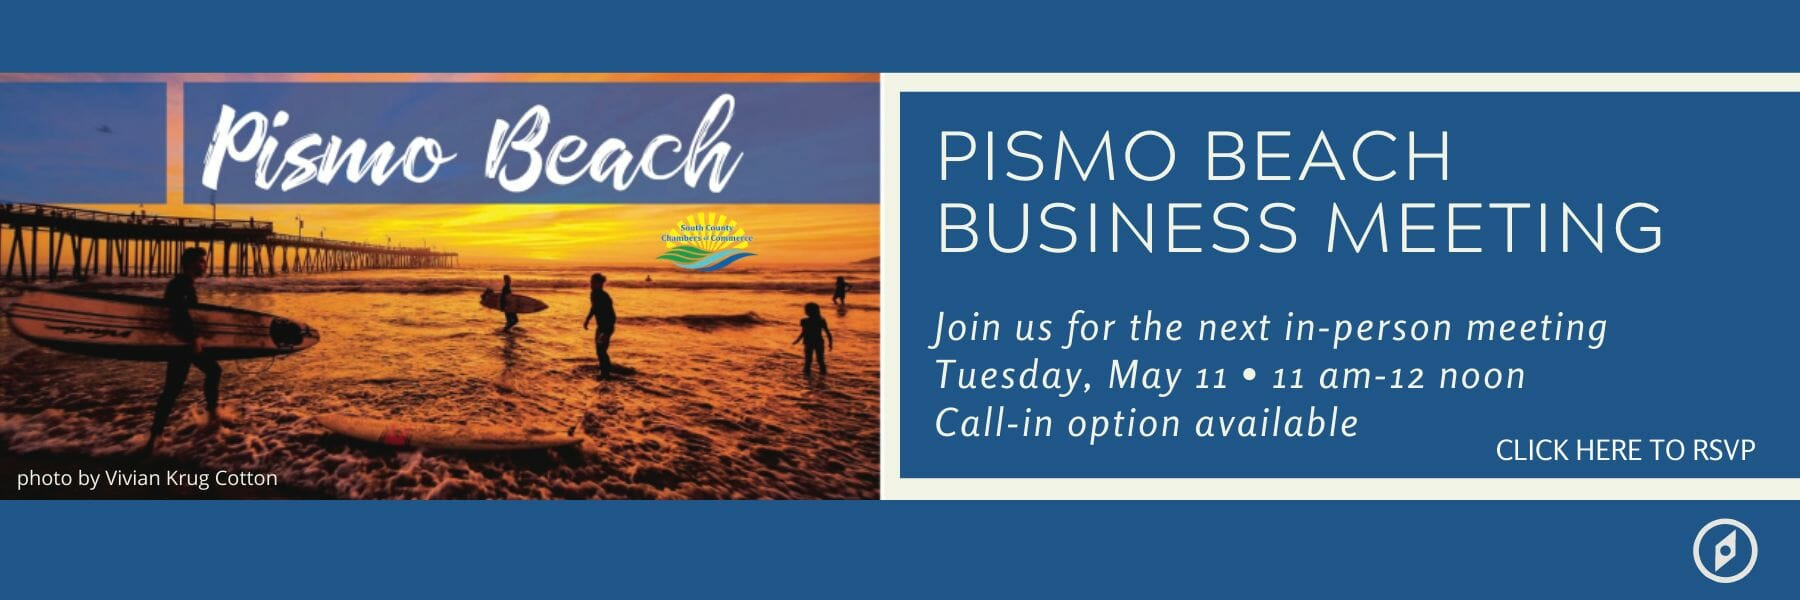 Pismo Beach Business Meeting